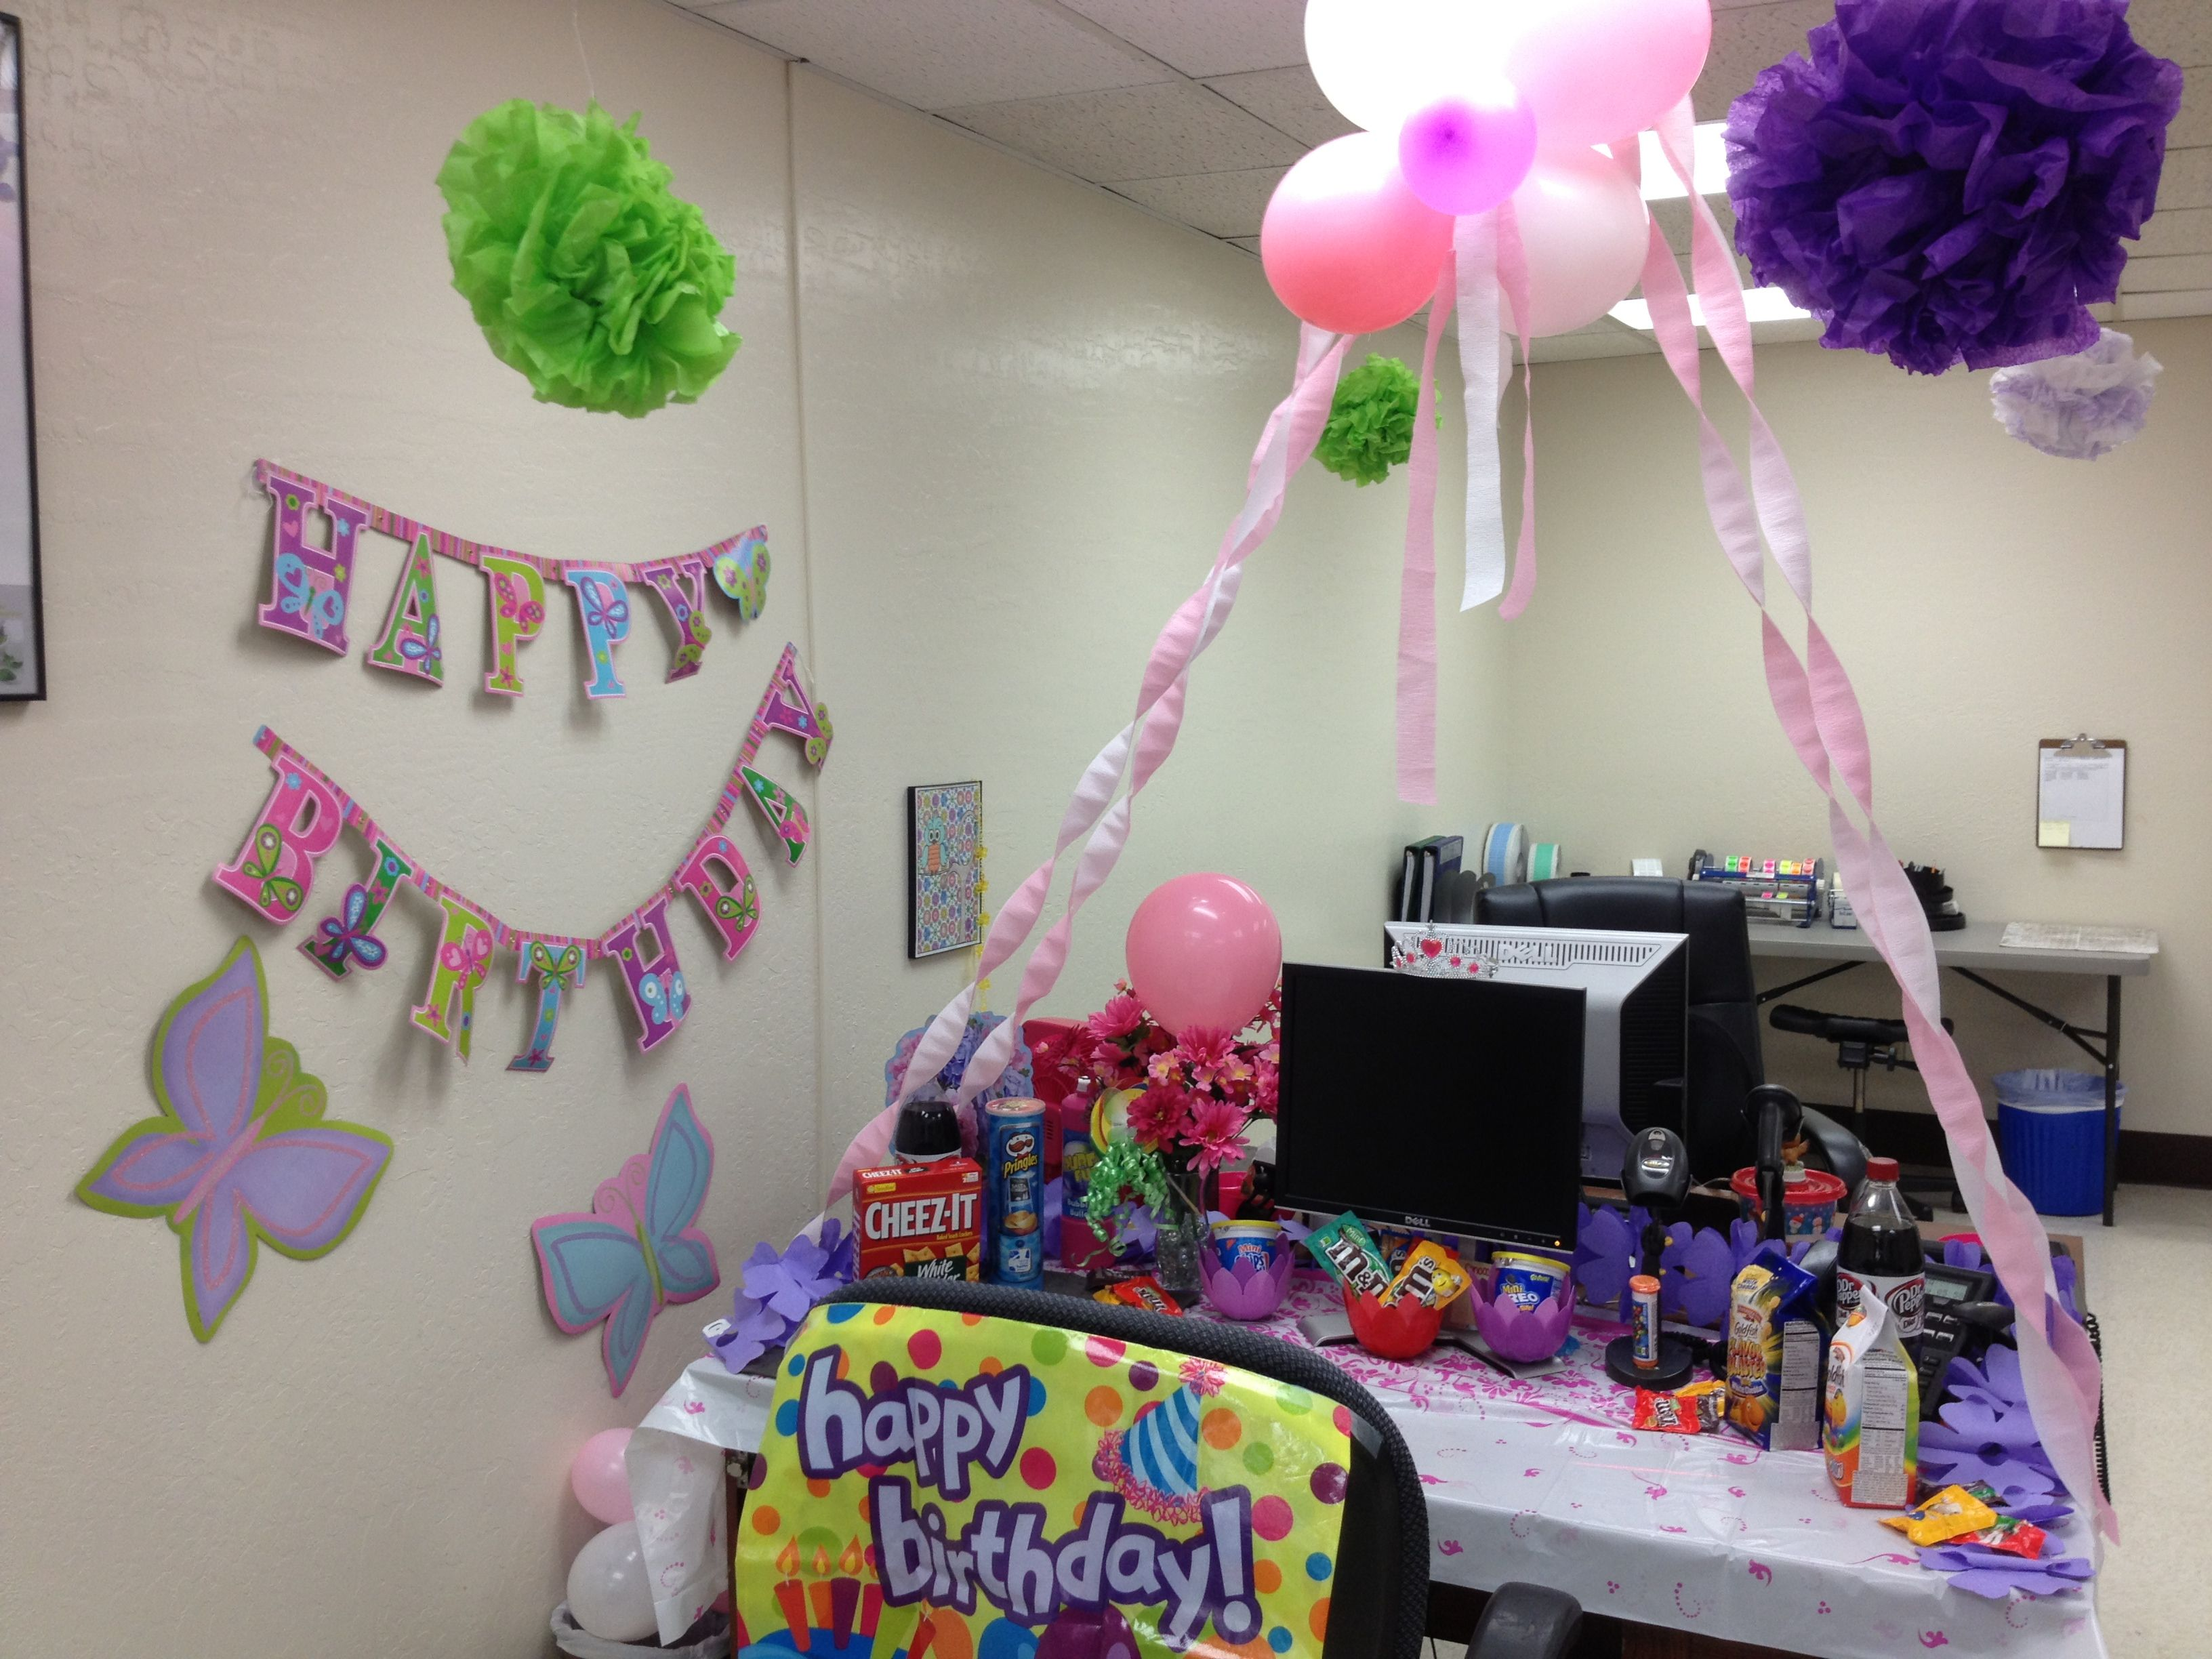 Farewell ideas for coworkers - Flower Garden Birthday Theme For Coworkers Birthday